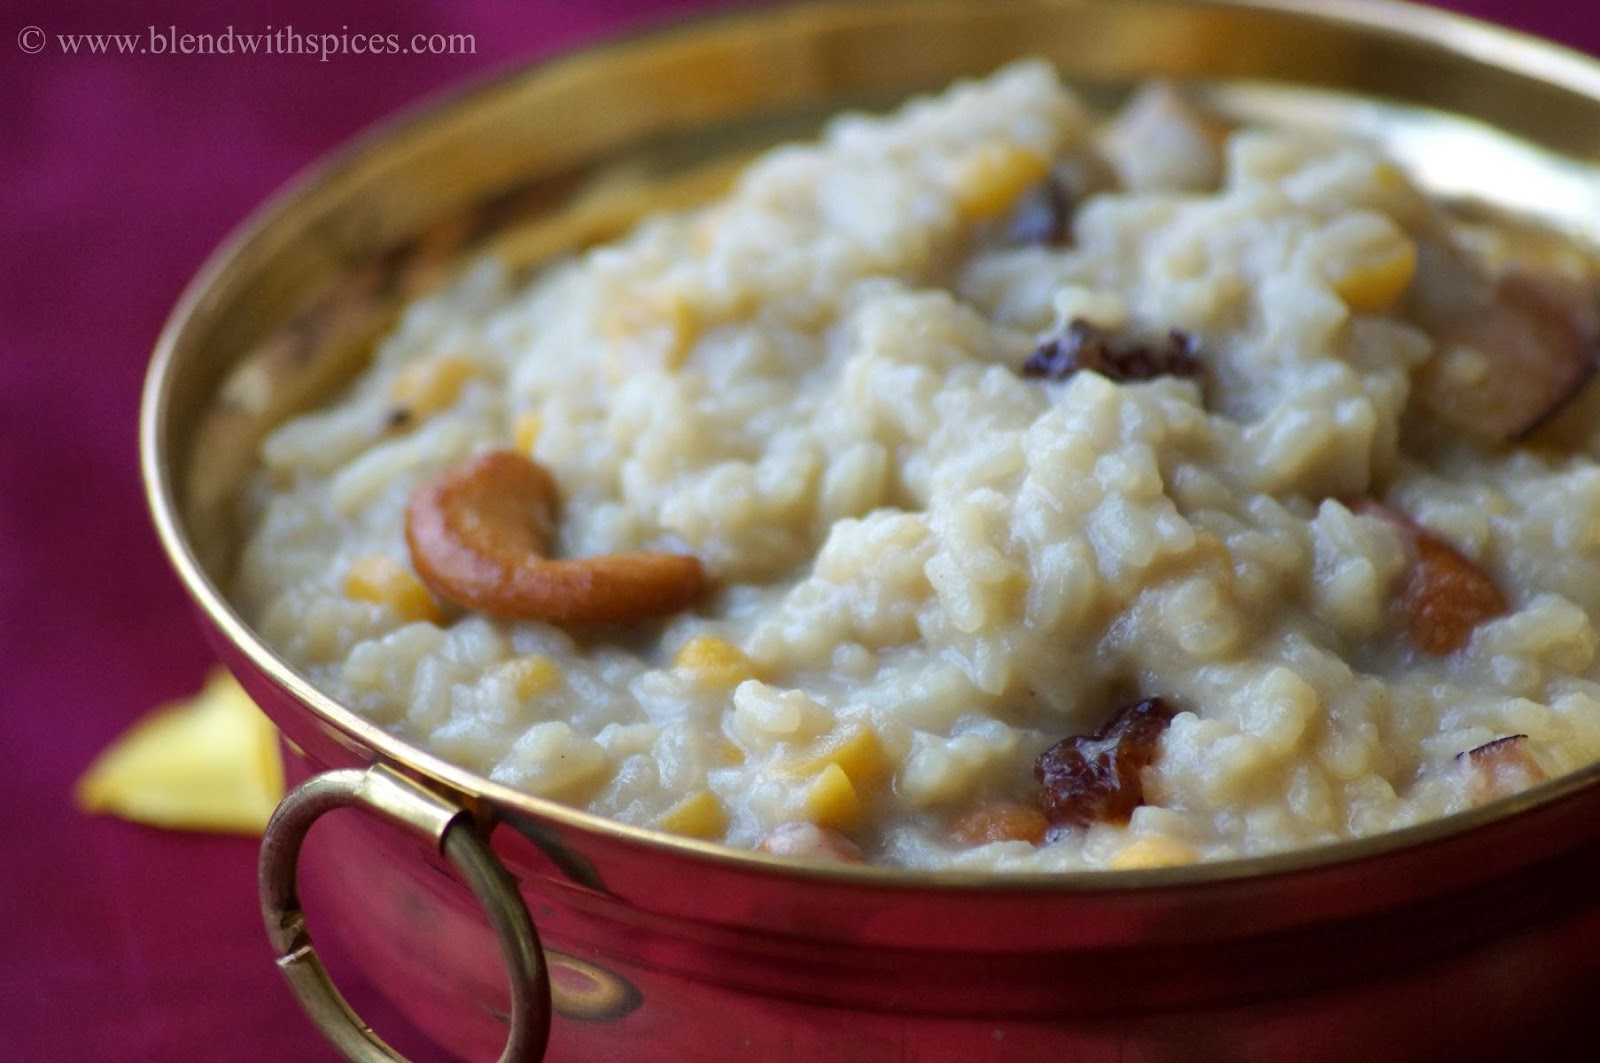 how to make pongali, pongali prasadam, sweet pongal naivedyam, how to prepare sweet pongal, recipe for bellam pongali